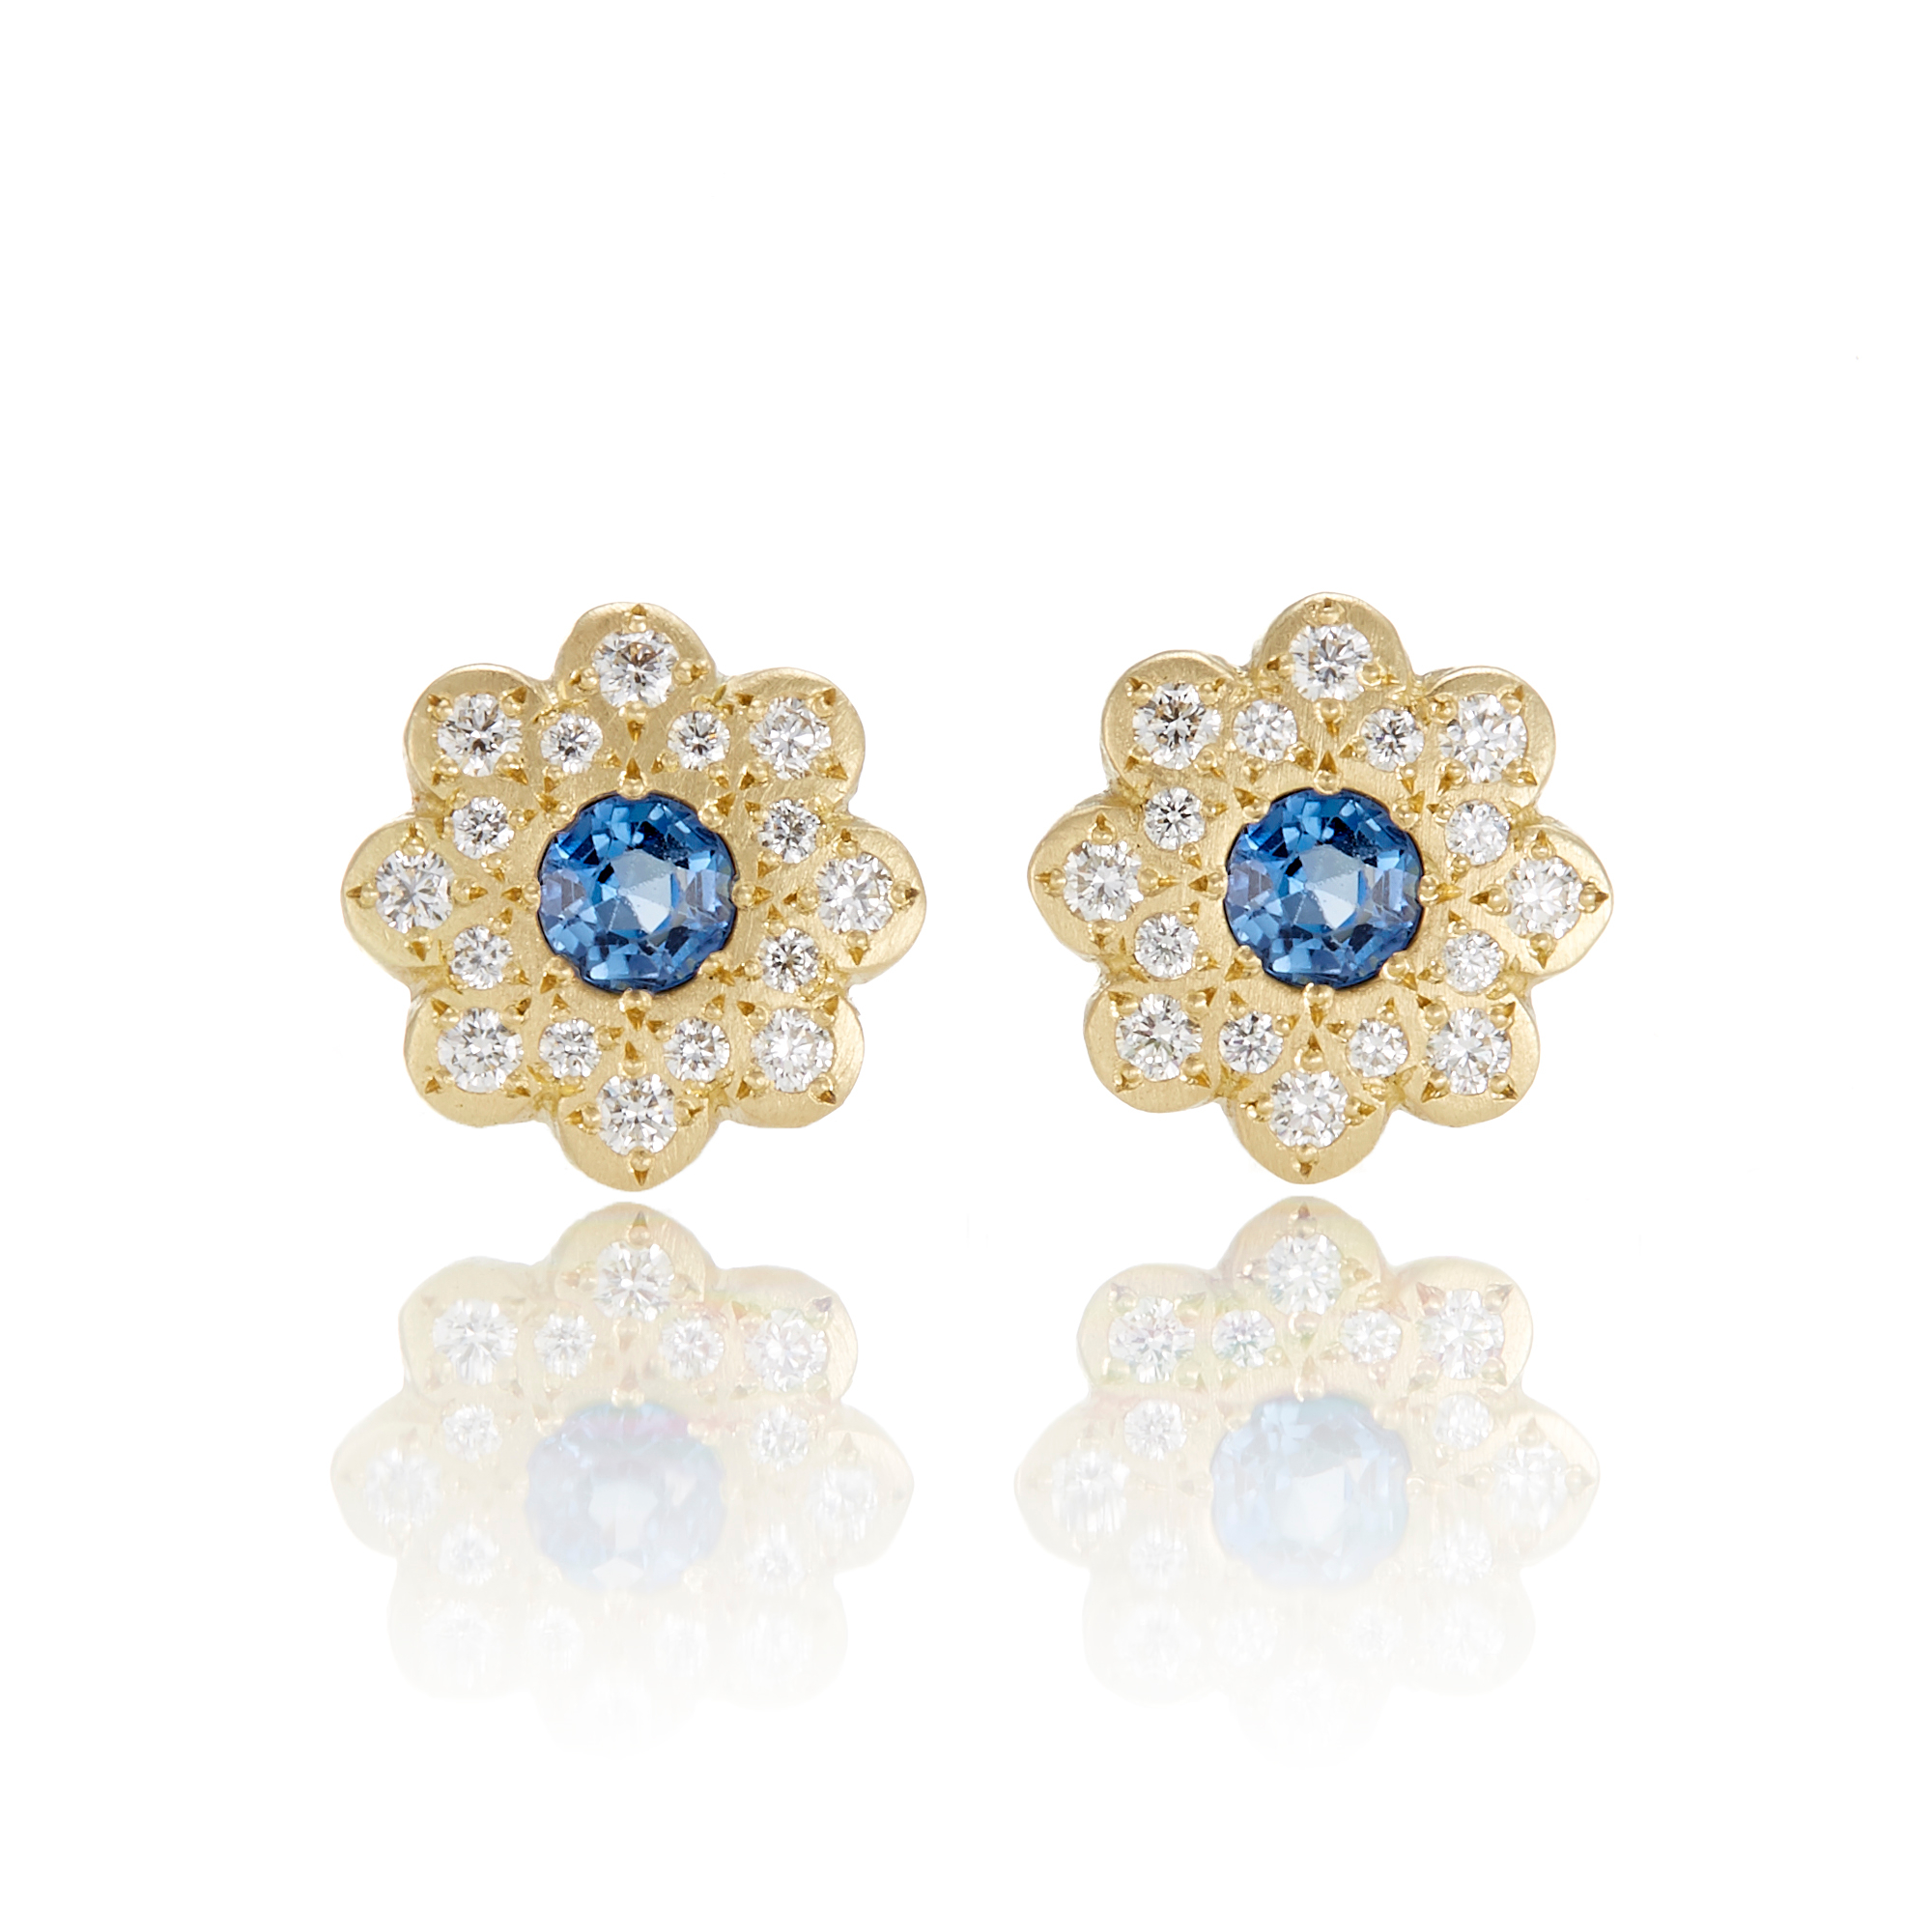 Adel Chefridi Moonflower Blue Sapphire Stud Earrings